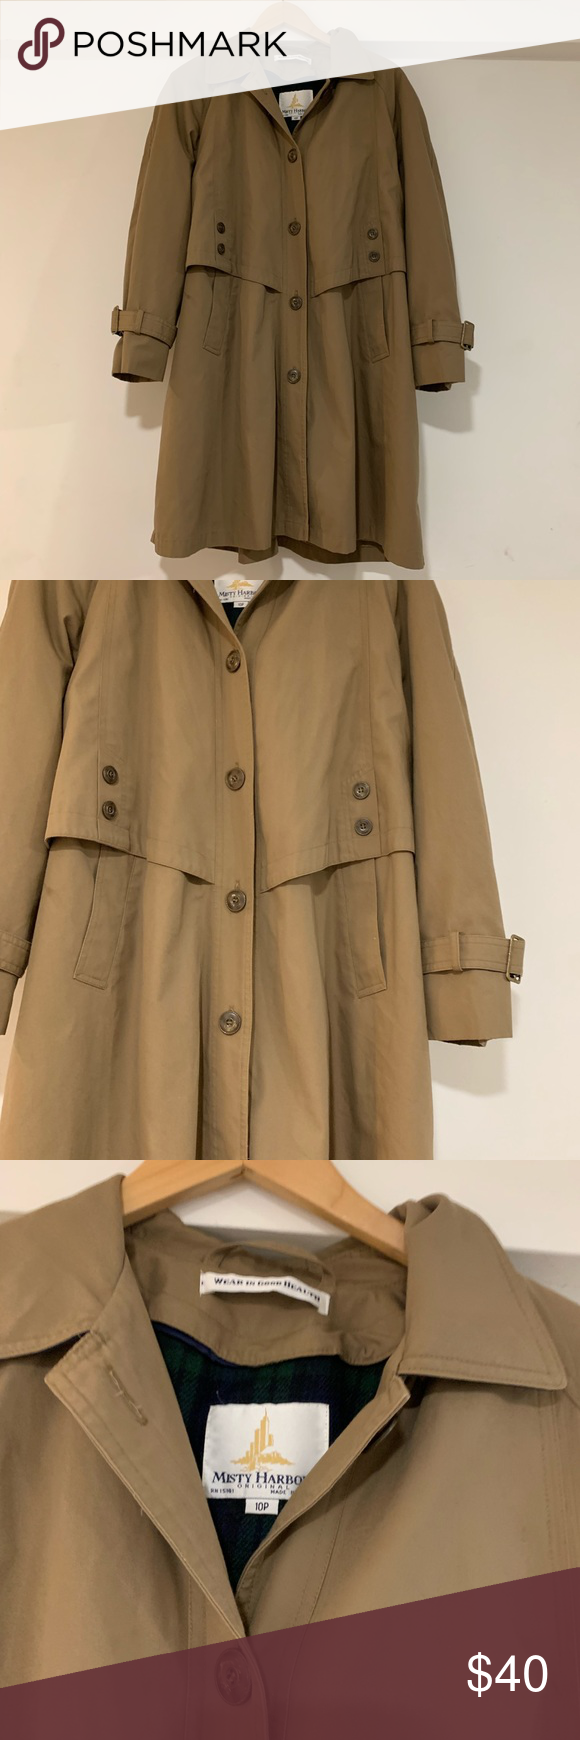 Misty harbor Paris style trench coat Misty harbor Paris style trench coat size 10p has small mark as shown in picture near waist Not noticeable This jacket is more amazin...